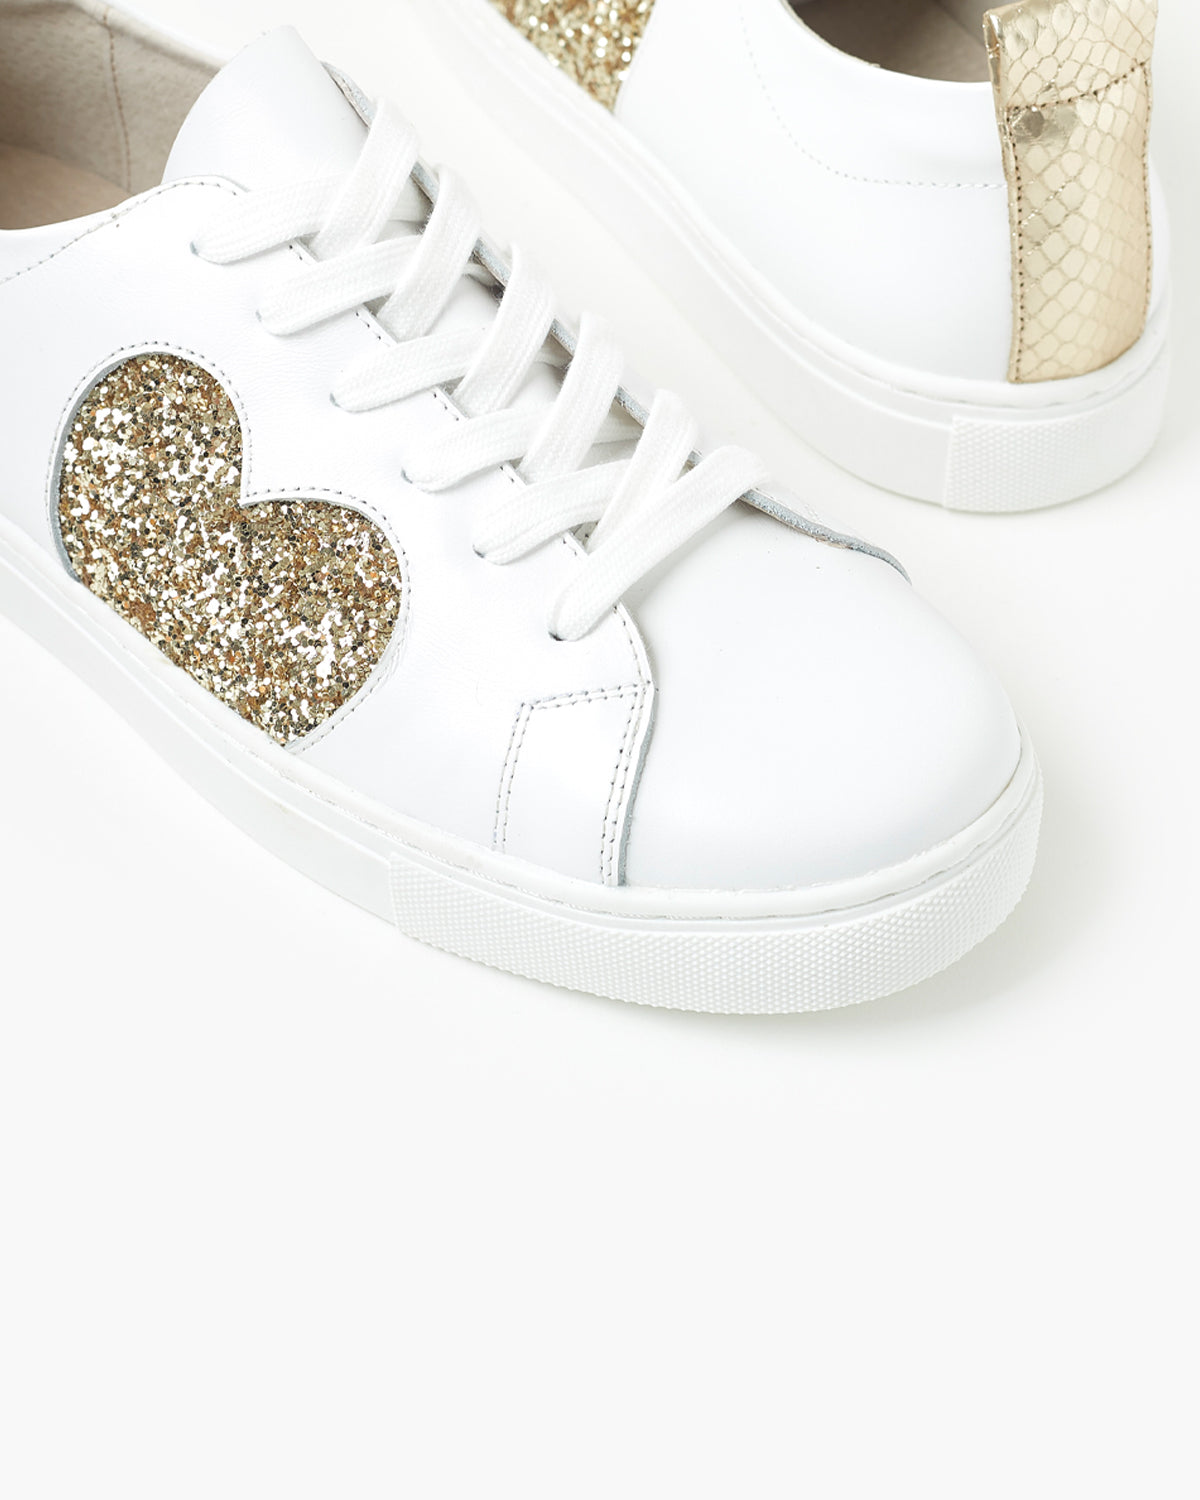 Heart Leather Sneaker - Gold Glitter